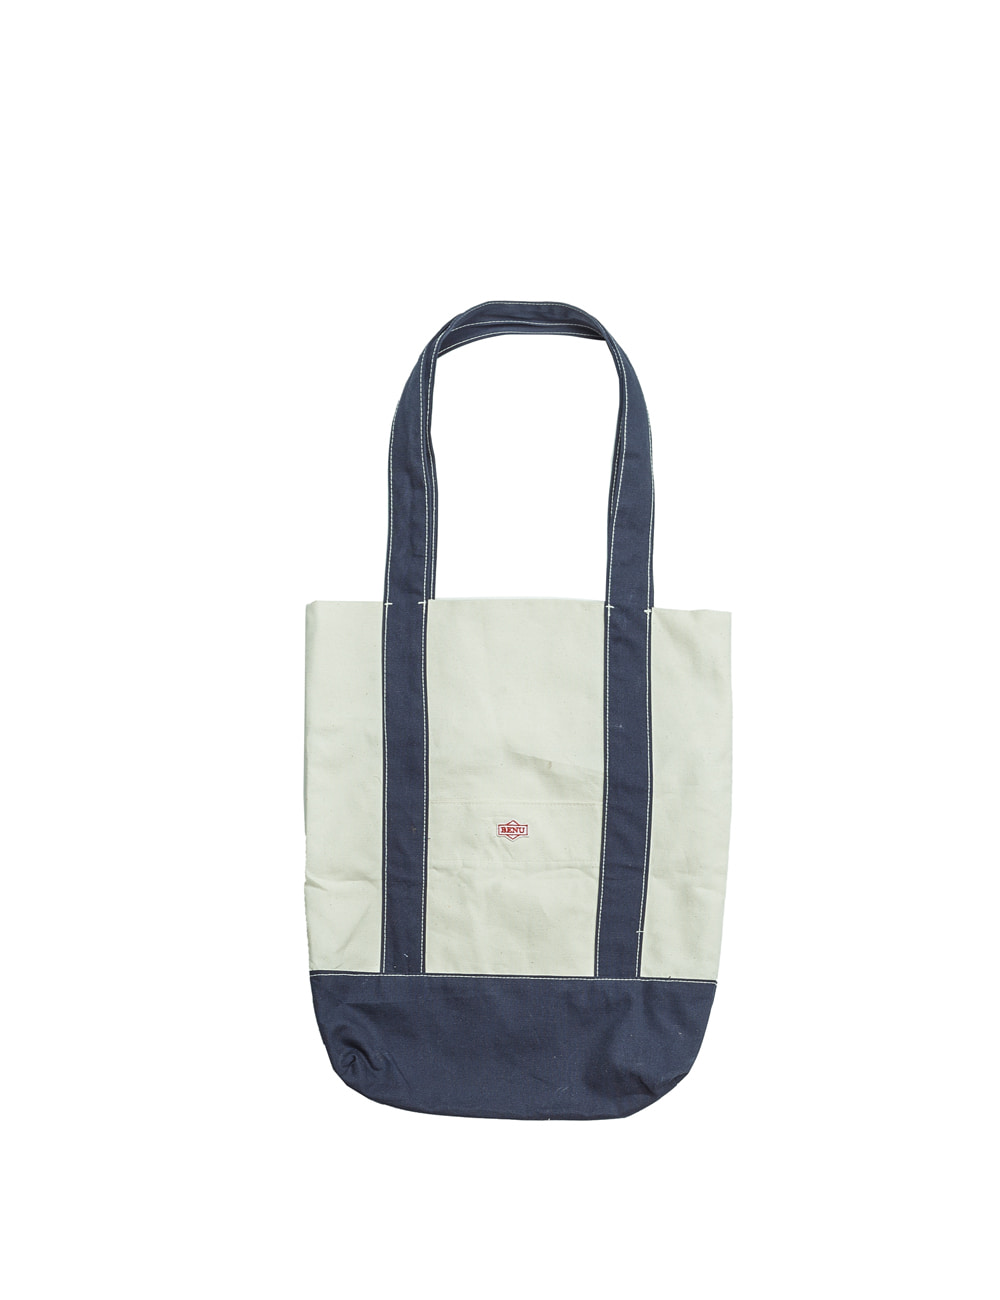 베어 BAG (2color)